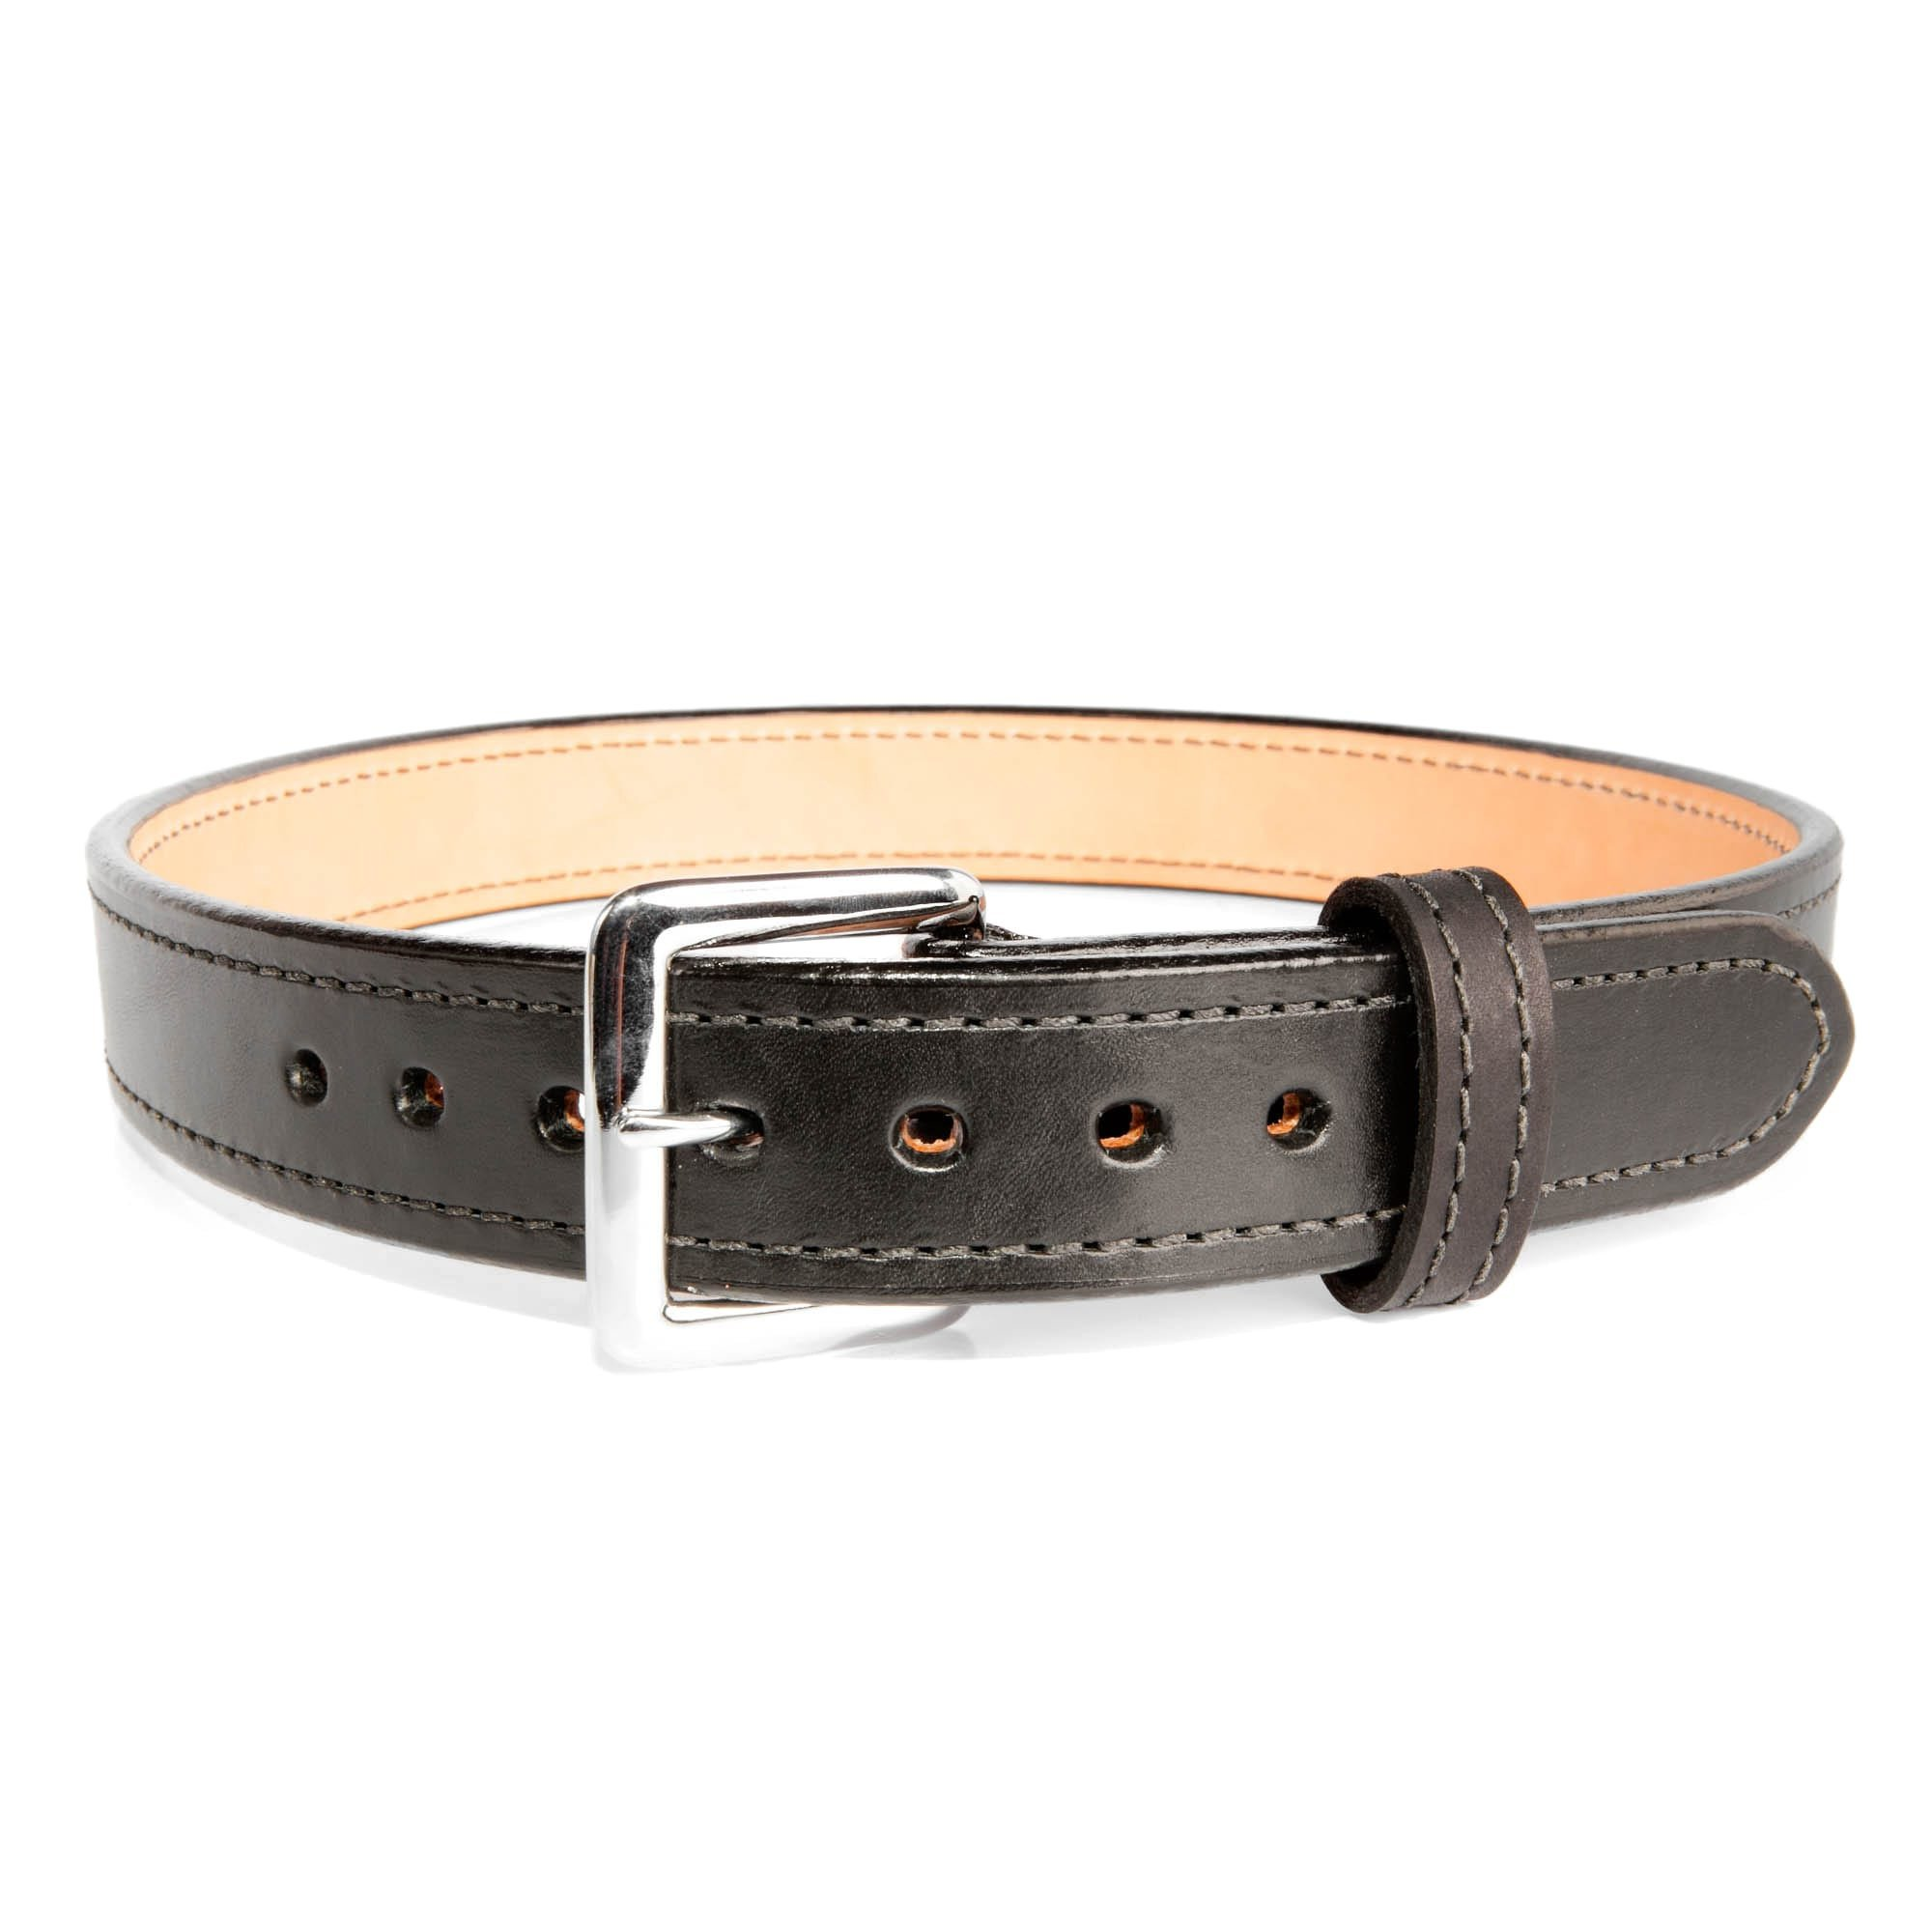 "QUICK SHIP Black 1.5"" Bullhide Concealed Carry Gun Belt By Beltman With  Square Chrome Buckle"